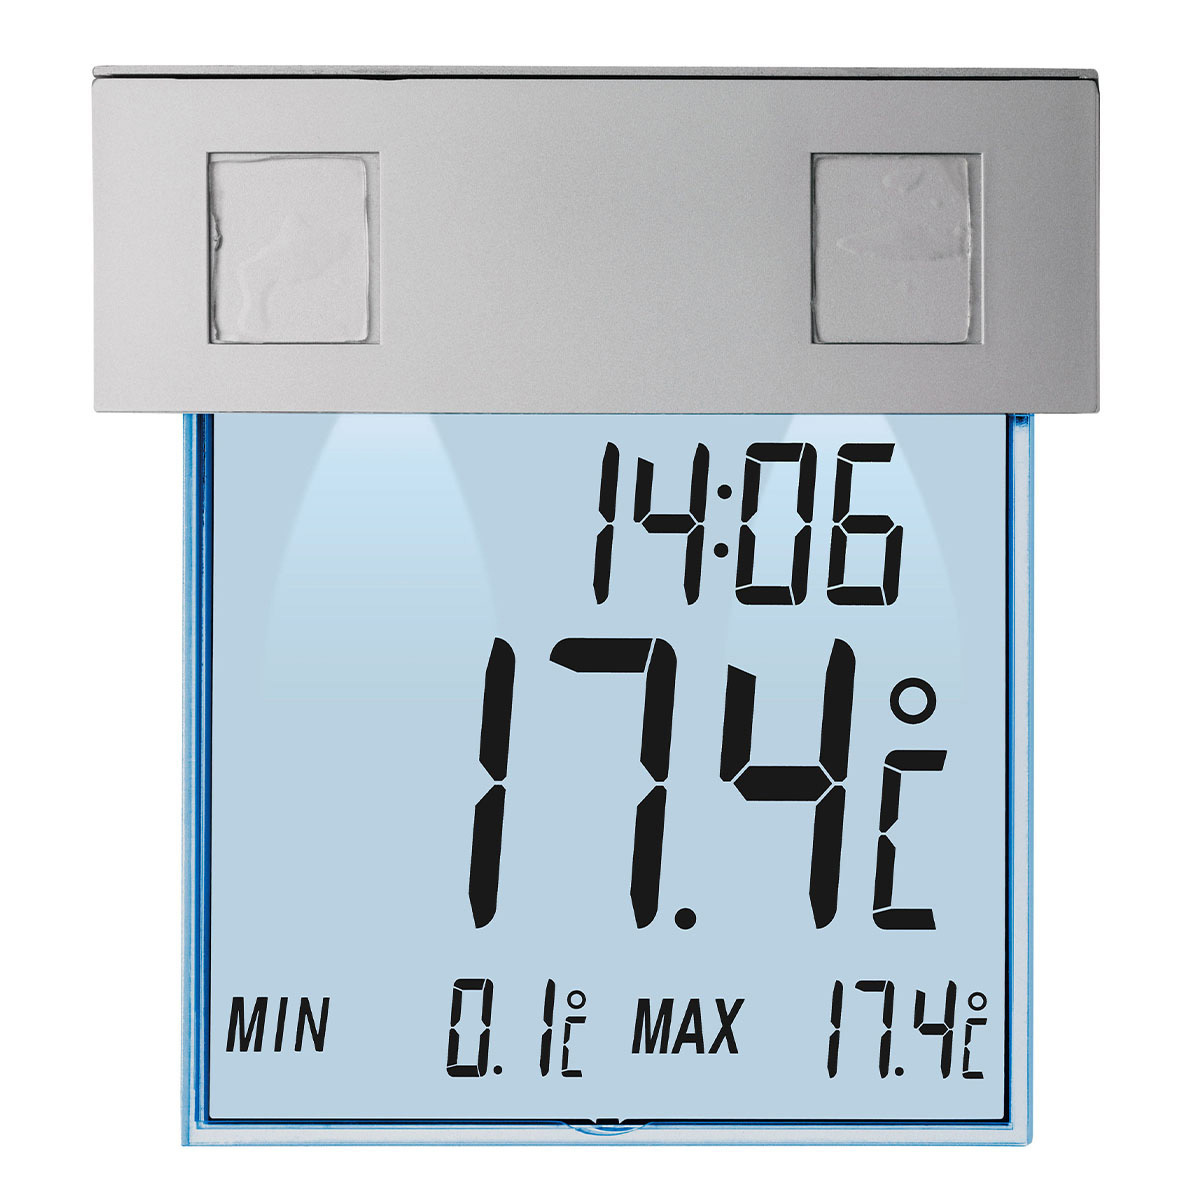 30-1035-digitales-fensterthermometer-mit-solarbeleuchtung-vision-solar-beleuchtung-1200x1200px.jpg